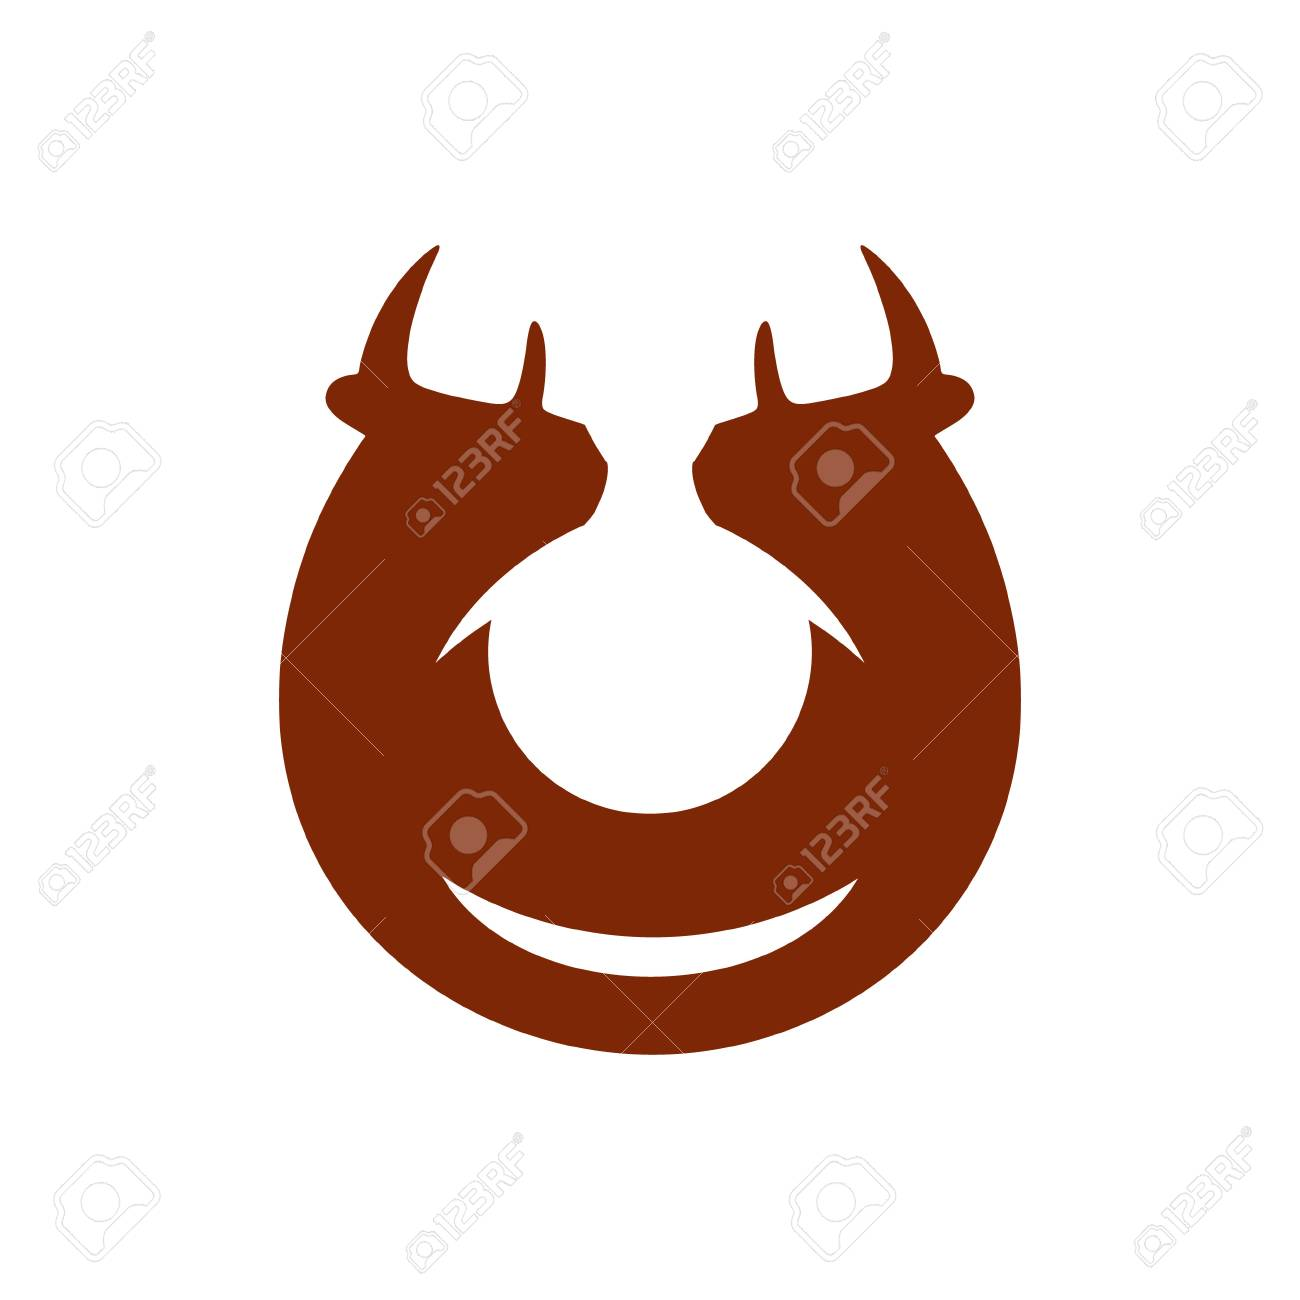 Cow Head Symbol Isolated On White Background Royalty Free Cliparts